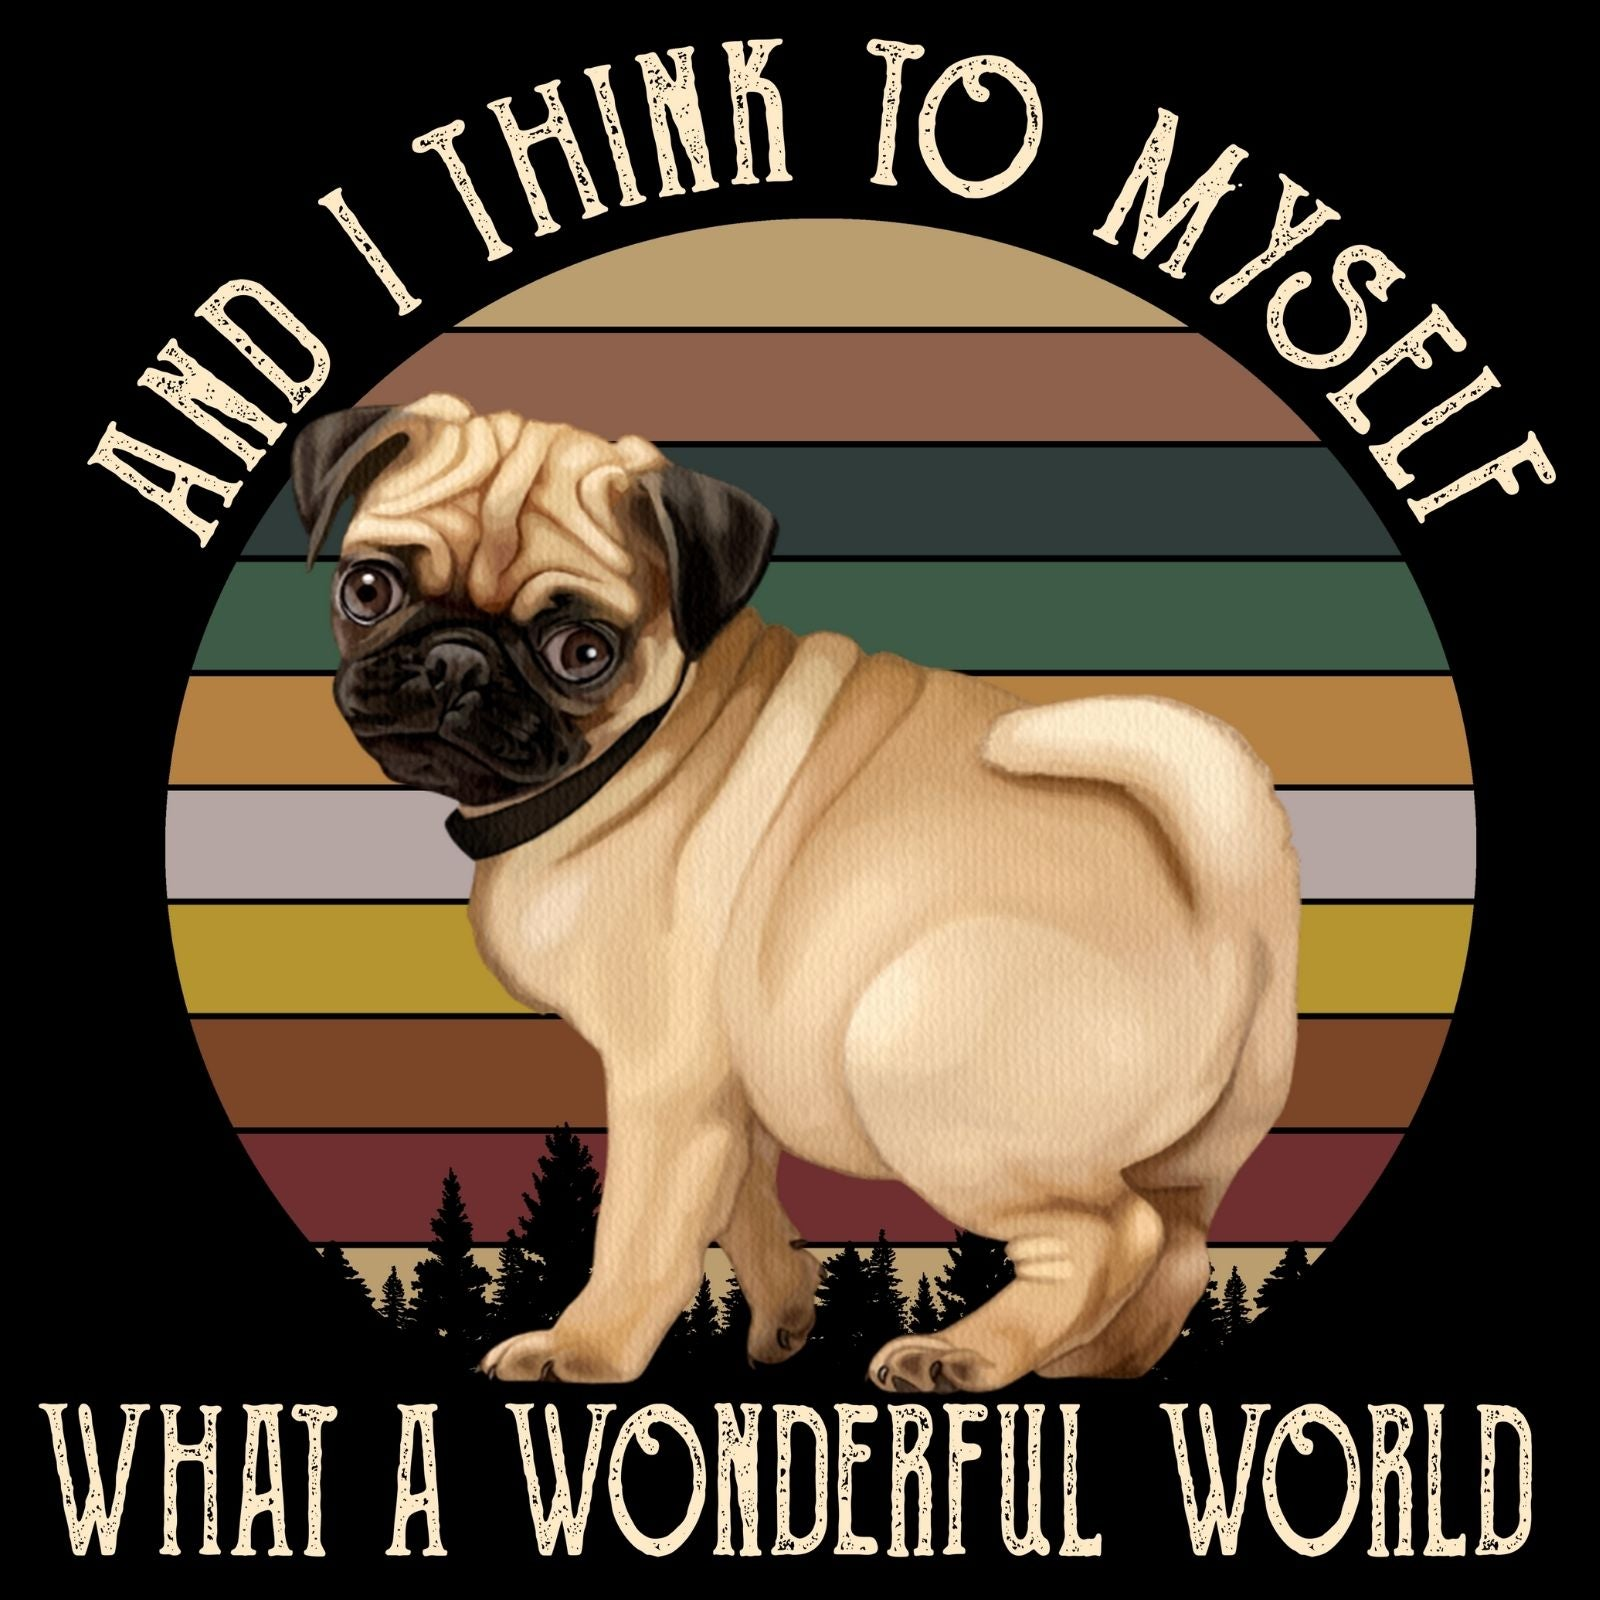 And I Think To Myself What A Wonderful World PUG - Bastard Graphics